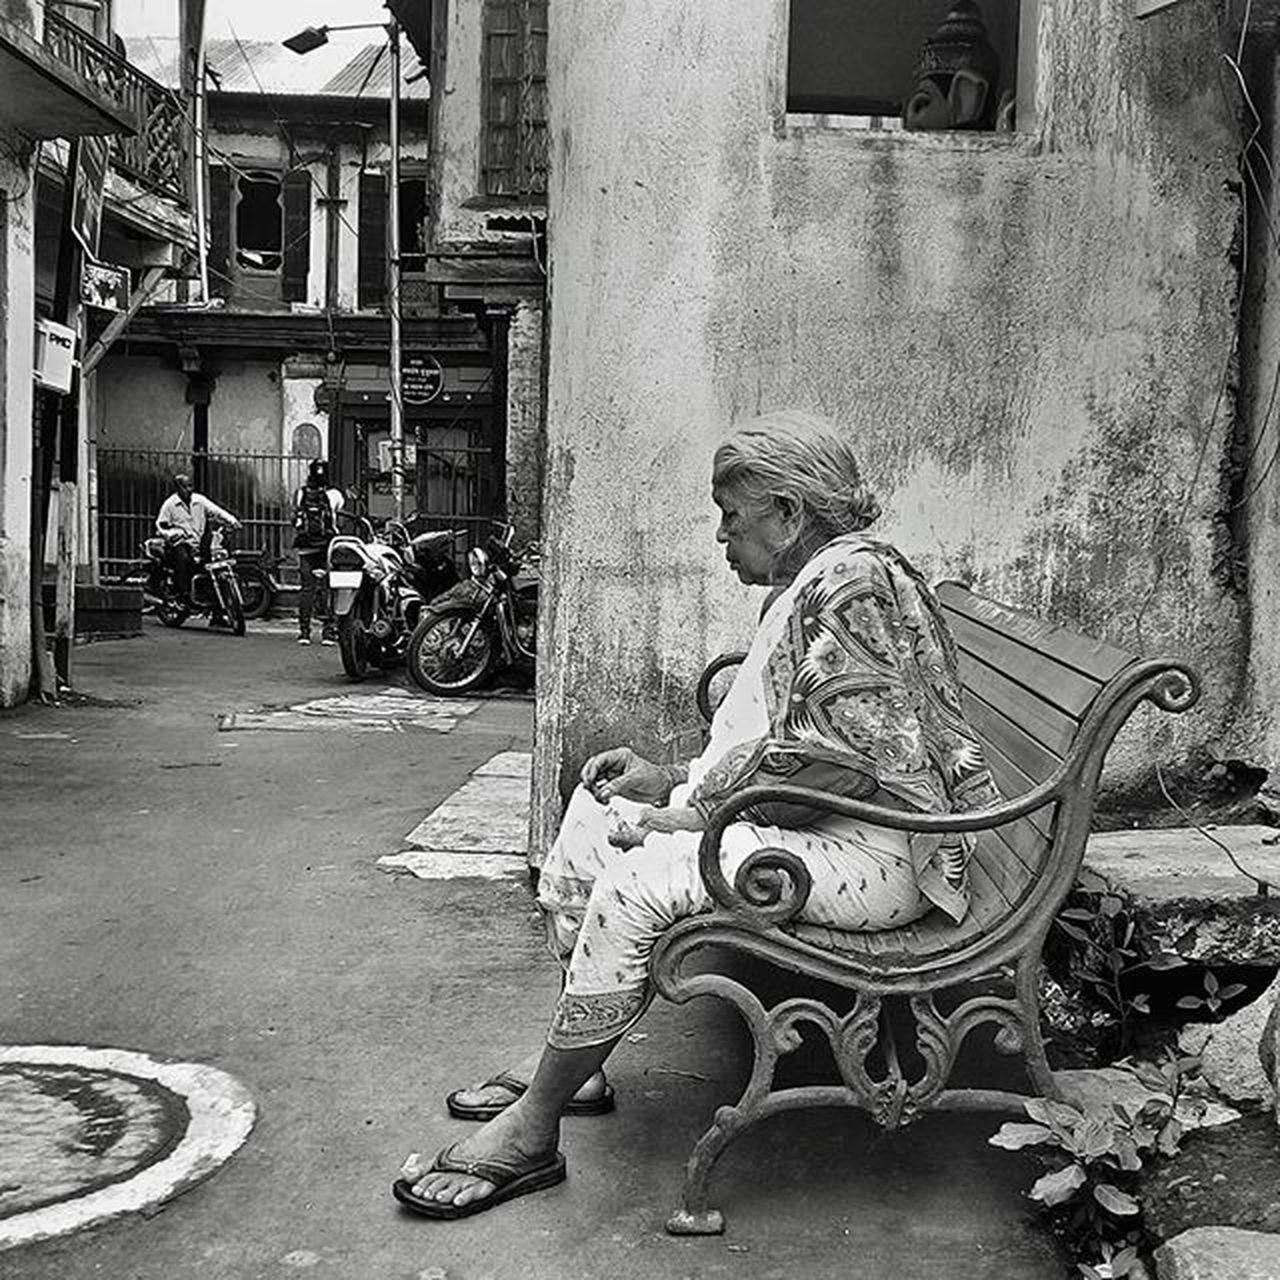 In deep thoughts. I was sitting just beside her clicking pictures for around 10mins but she didn't even noticed. Streetphotography Street Blackandwhitephotography Blackandwhite Streetphotography Traveller Travellers Travellerslife Pictureoftheday Picoftheday Instadaily Instagood Puneclickarts Punebytheday Old People Photowalk Life Citylife Thoughts TPSextreme @thephotosociety Inspiroindia